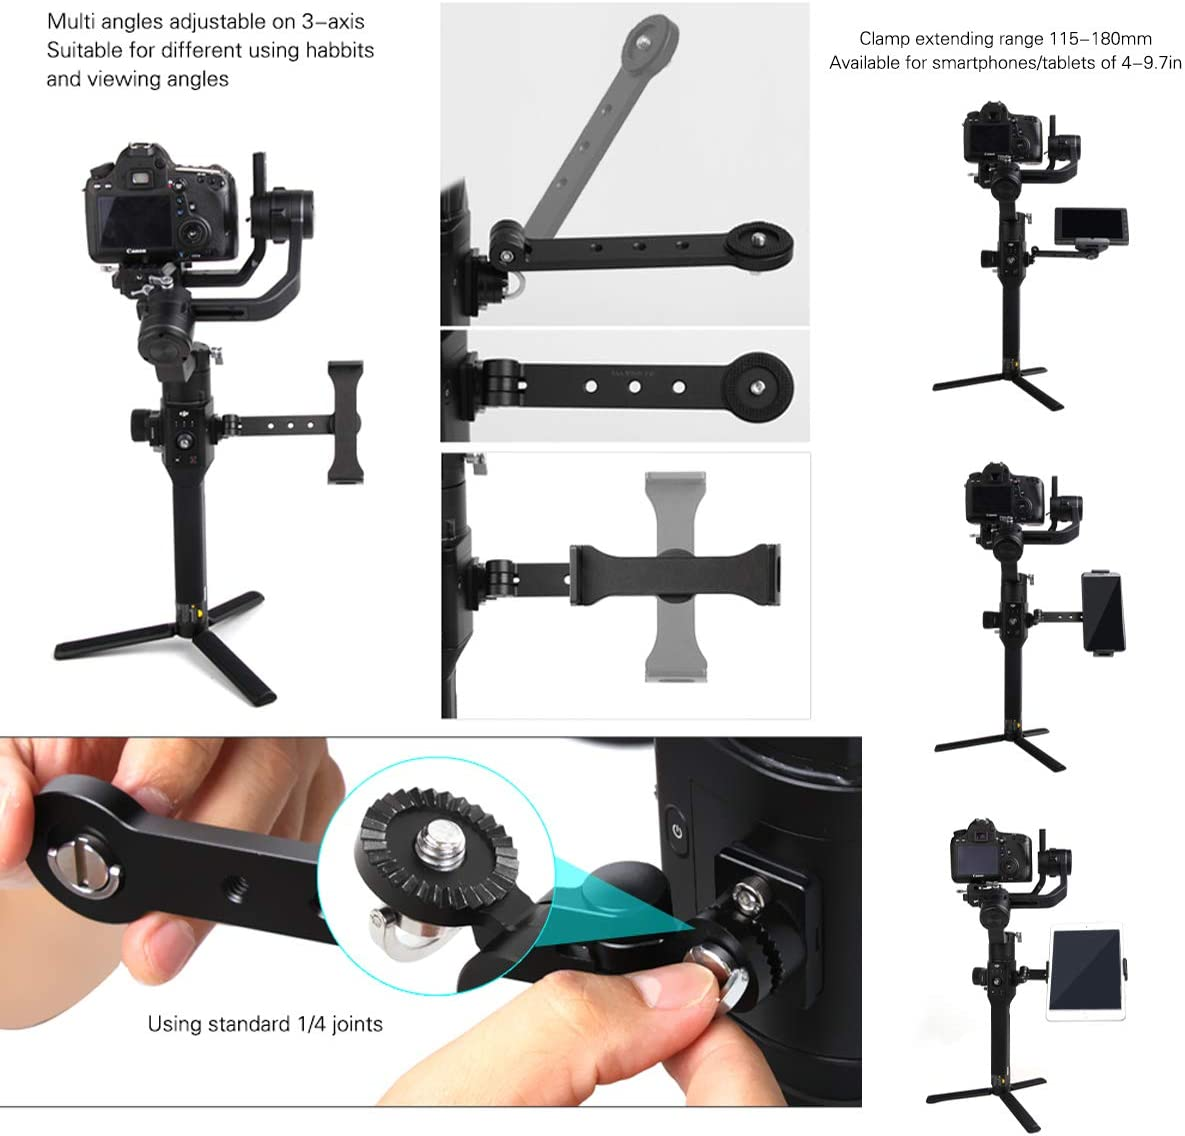 Microphone Tablets Handle Grip Extension Bracket with Adapter Ring Clamp Mount to Clip Smartphone LED Video Light Darkhorse Accessories Set for Mounting Monitors Compatible with DJI Ronin S